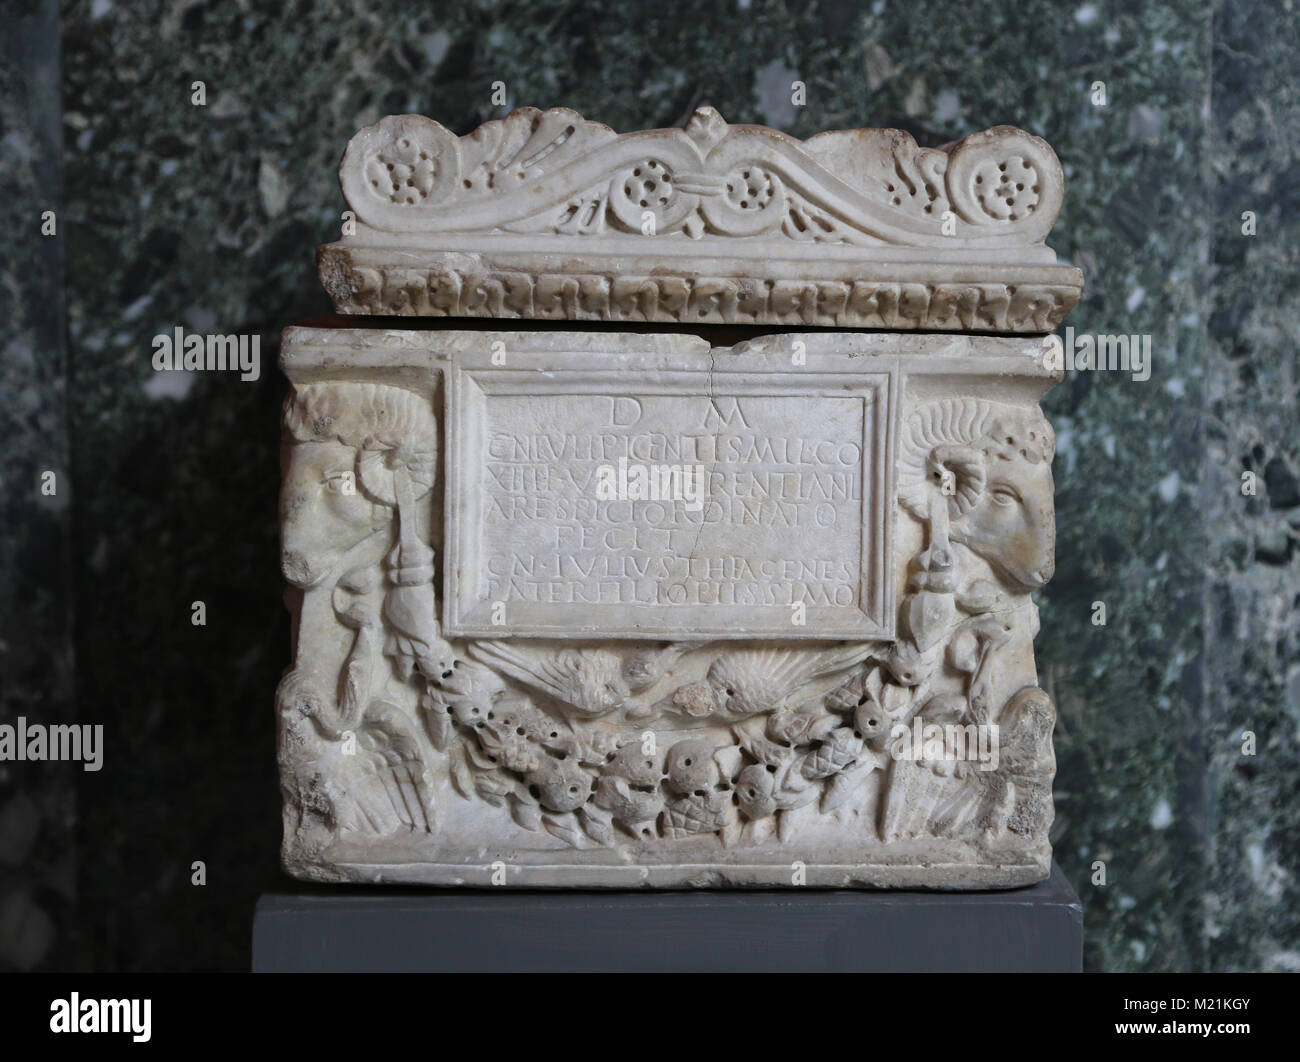 A Roman marble cinerary urn inscribed for Gaius Julius Picens, Police soldier. Rome, 70-100  AD. - Stock Image